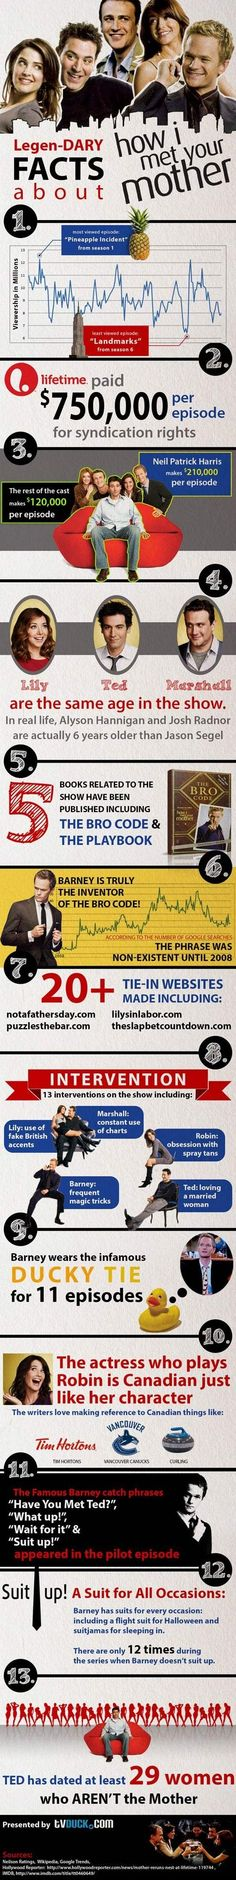 Legendary Facts About How I Met Your Mother